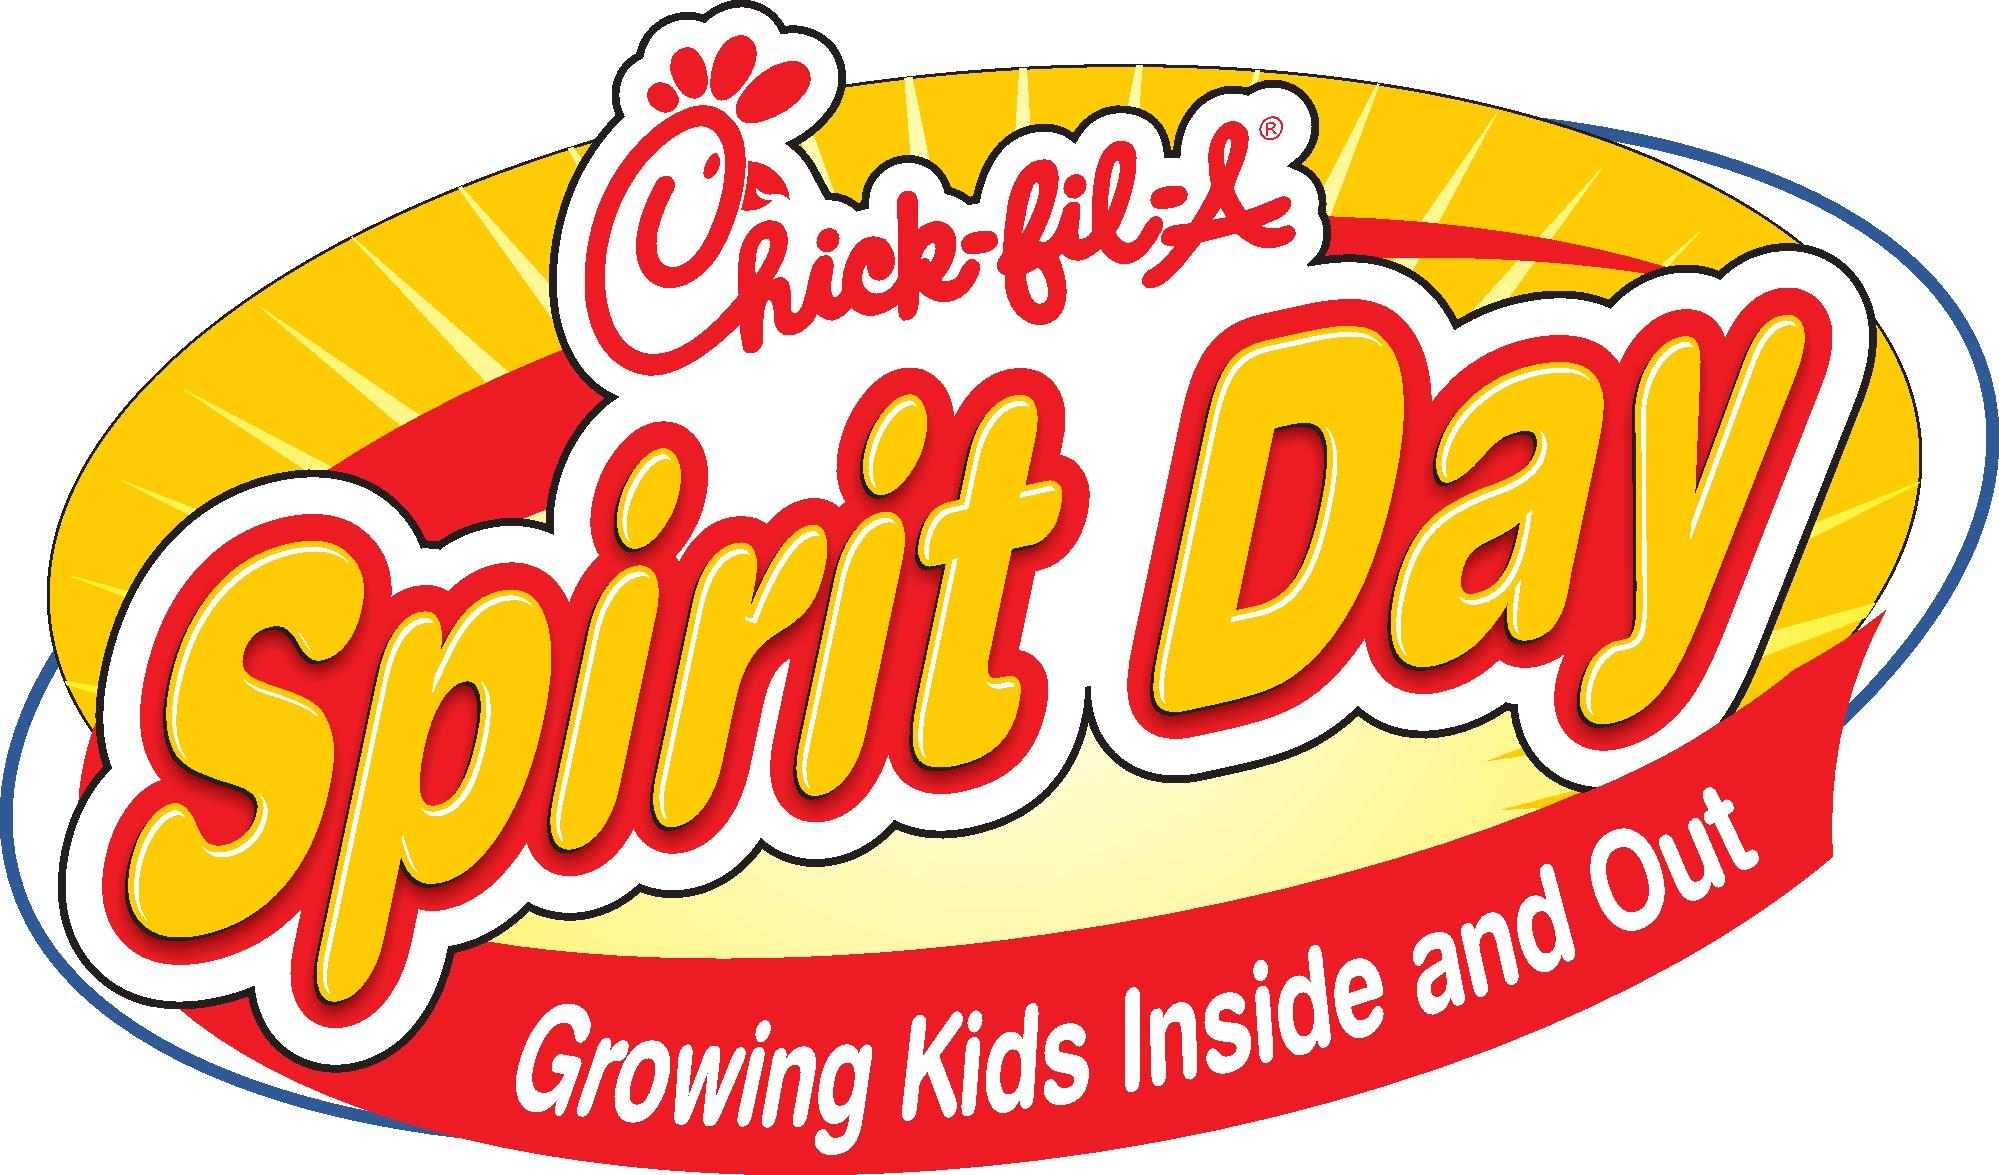 HCLS Spirit Day @ Chick Fil A